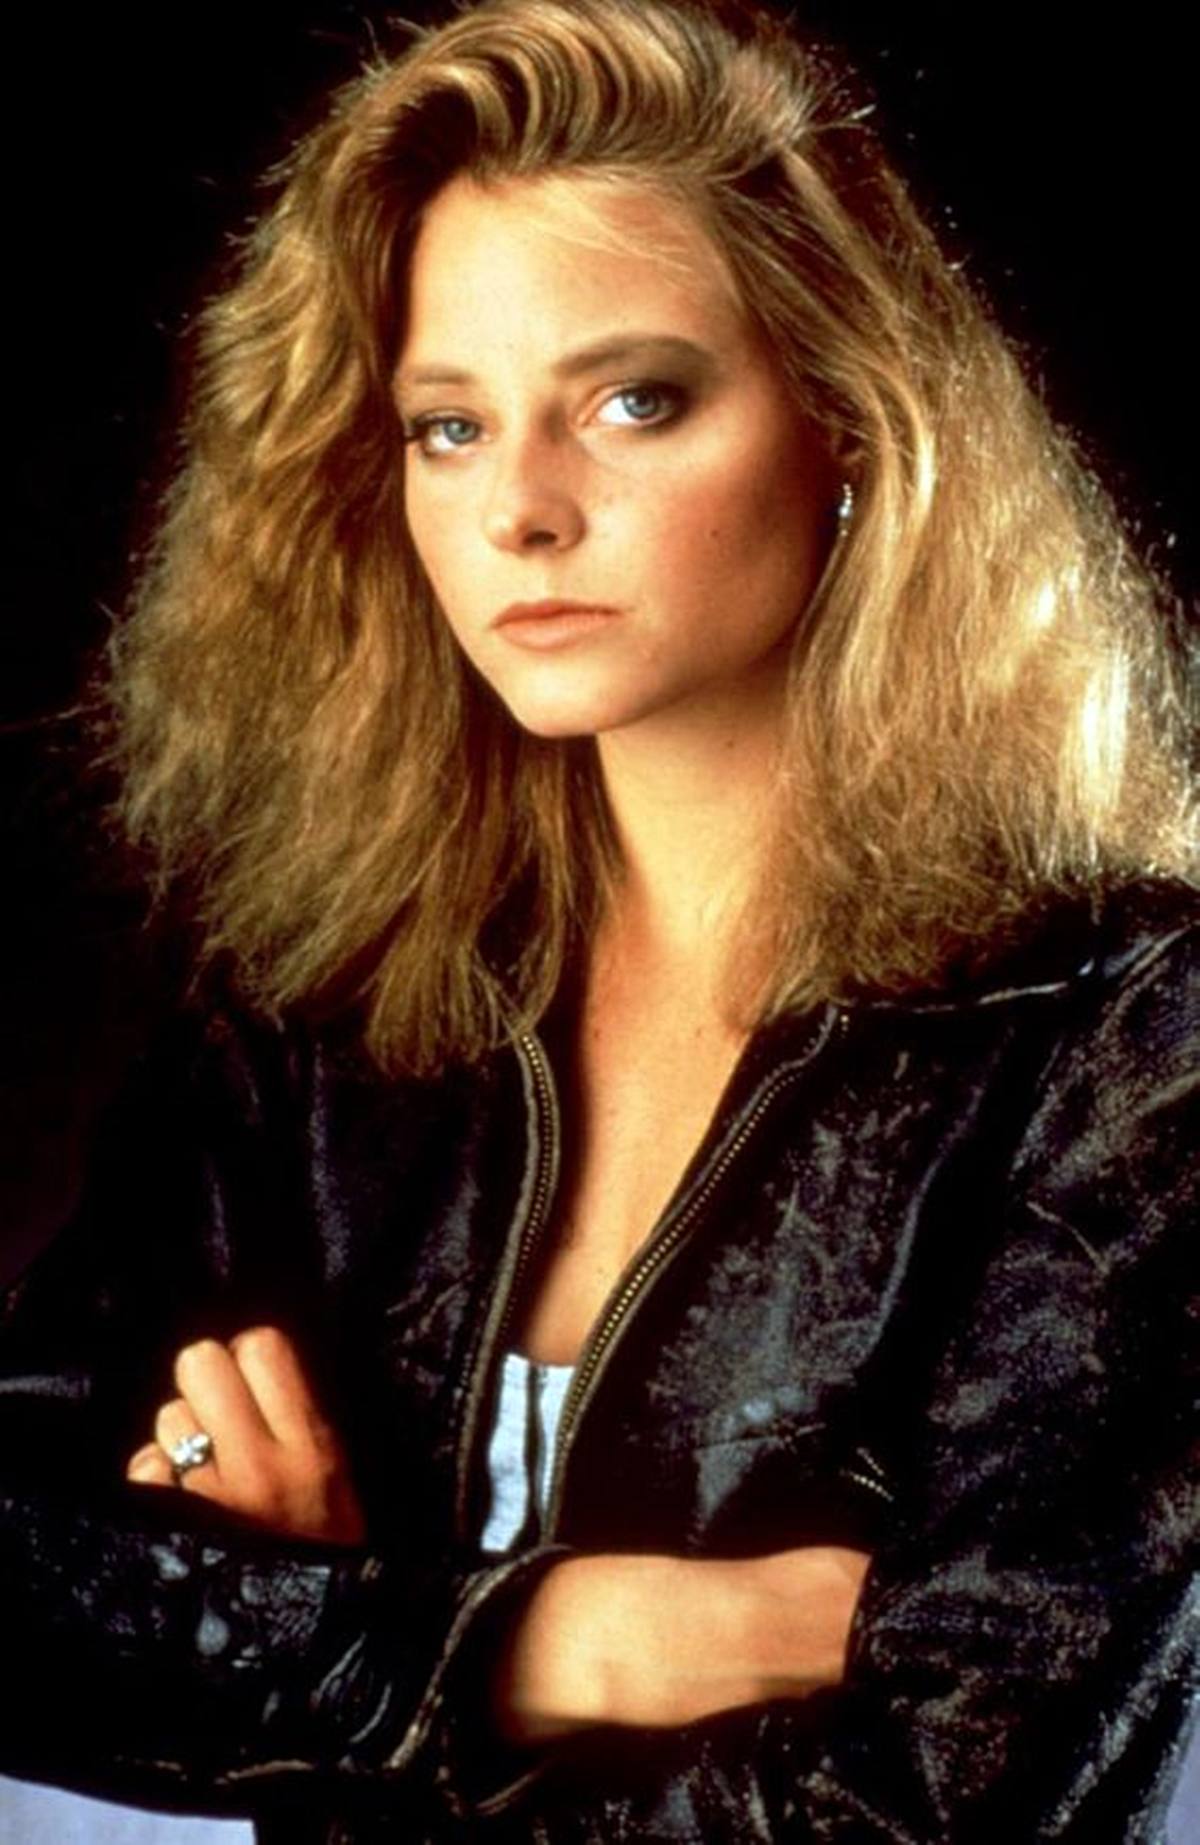 6 23 14 Things You May Not Have Realised About Jodie Foster